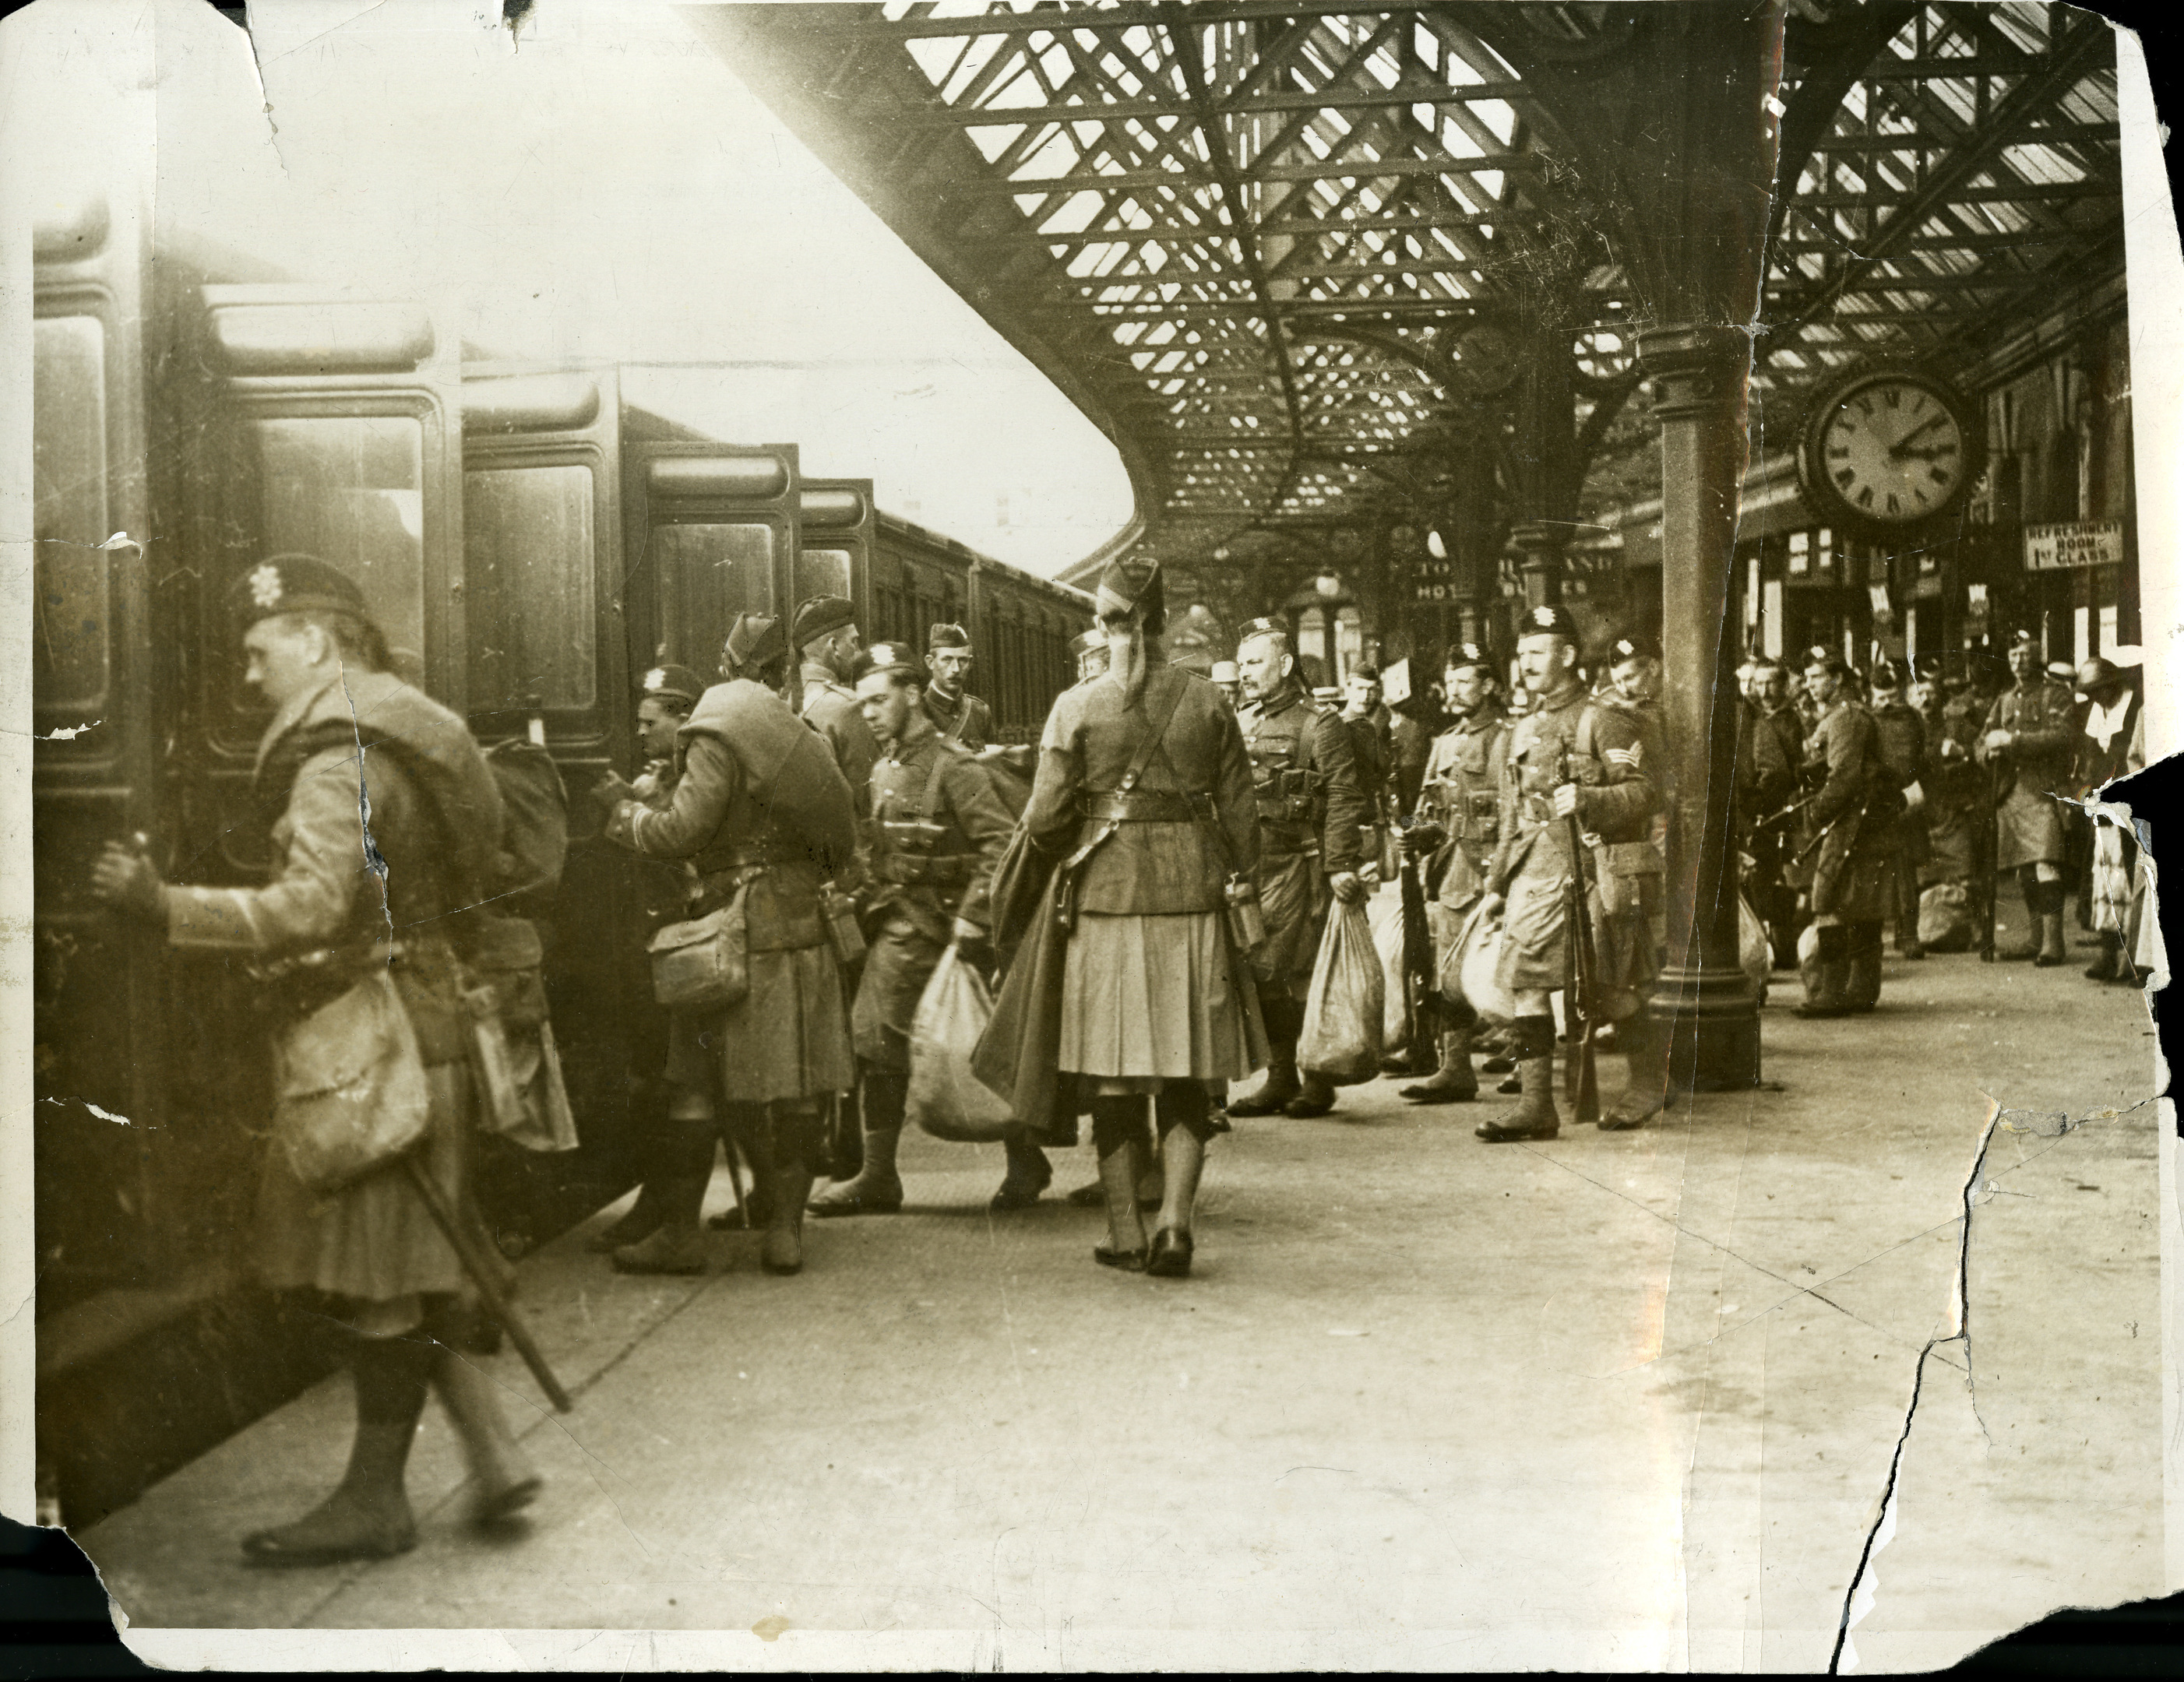 Members of the 4th Battalion, The Black Watch, leaving Tay Bridge Station